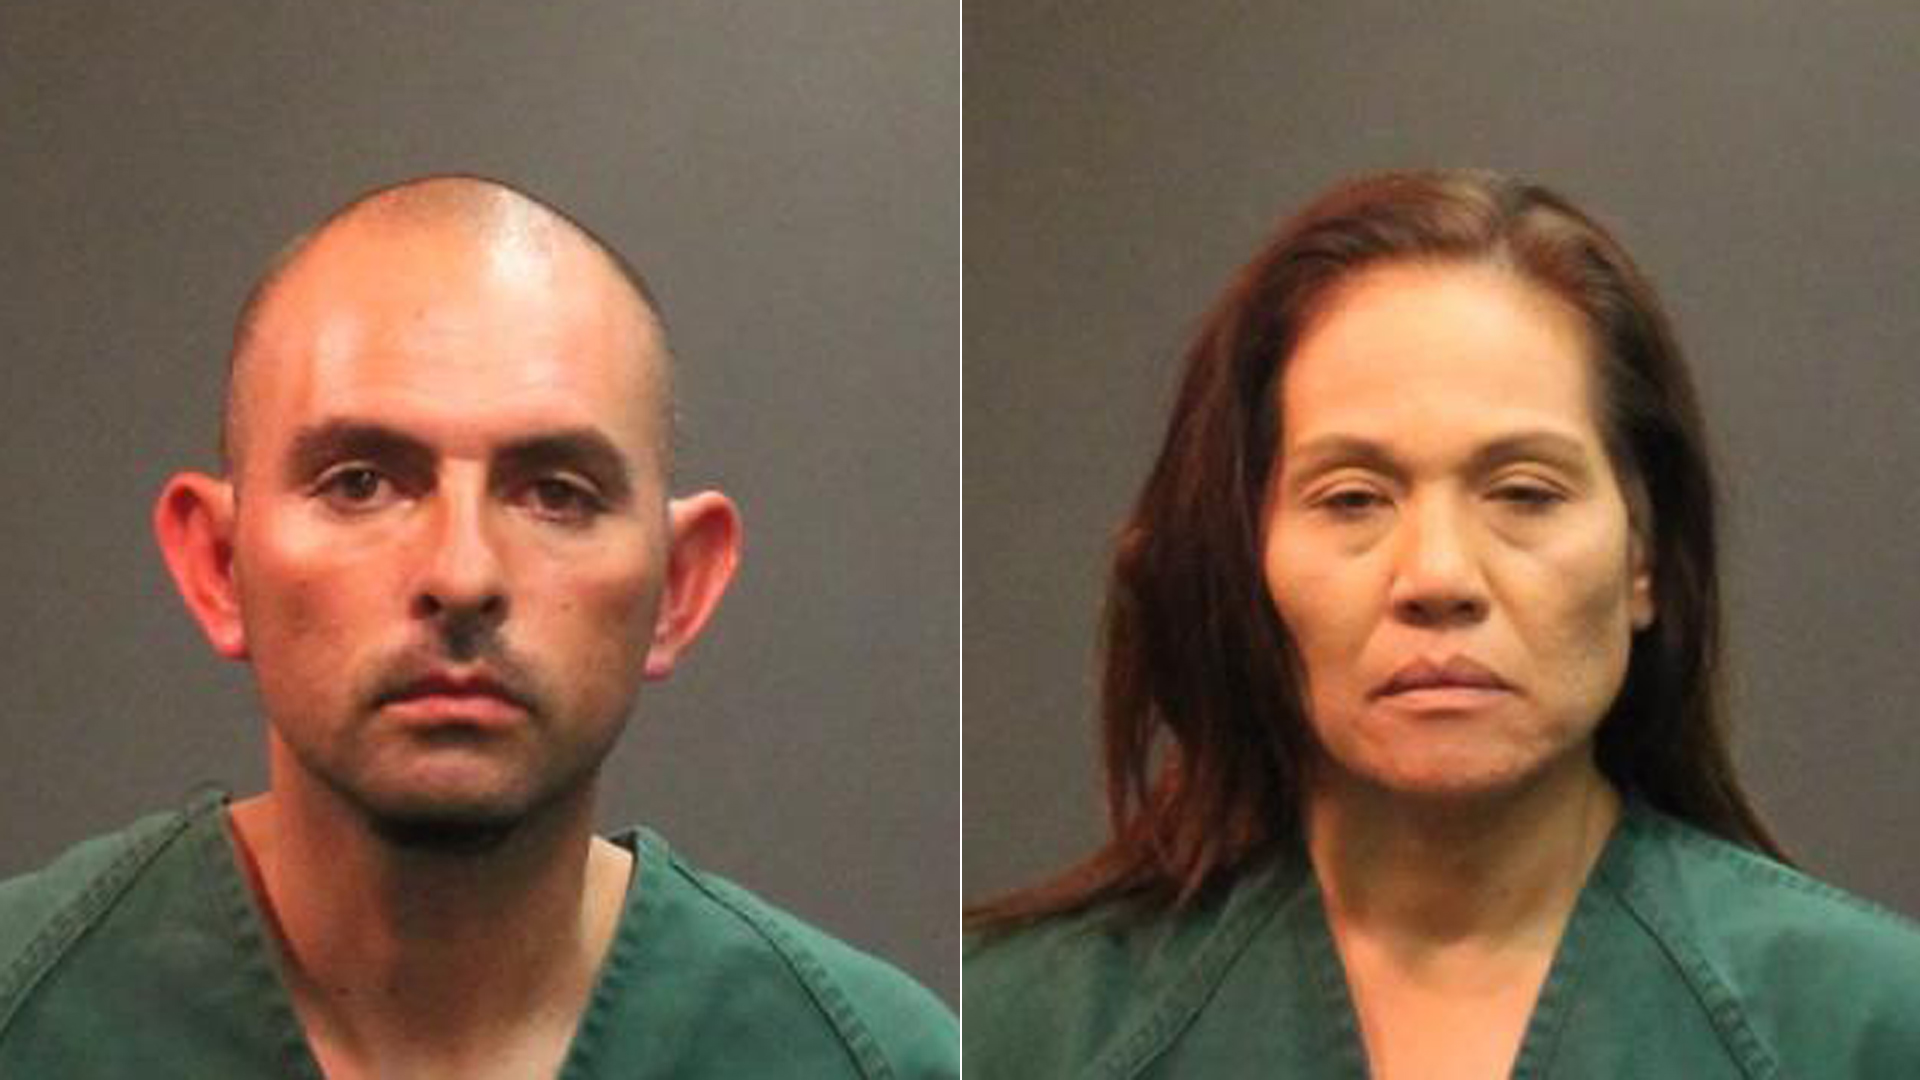 Jose Jimenez, 39, and Renee Paredes, 49 are shown in this photo released by the Santa Ana Police Department on Dec. 21, 2018.